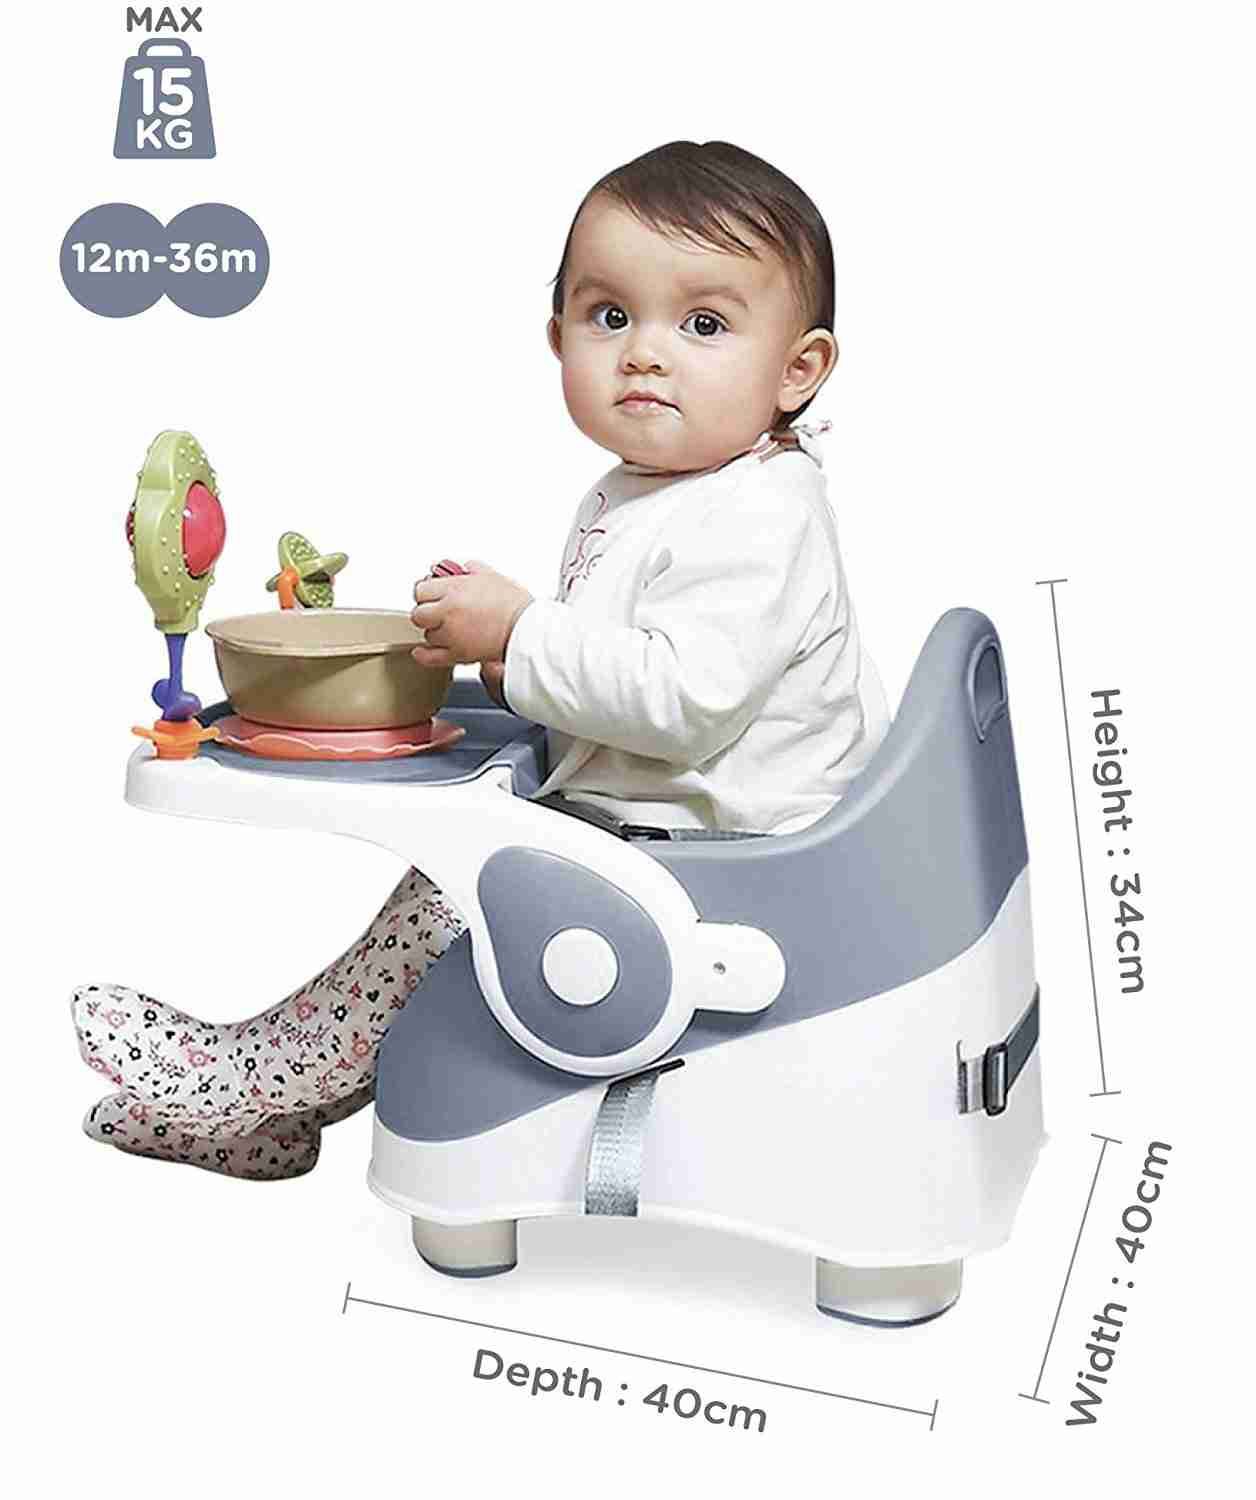 The Venture Q-Fix highchair is fully adjustable and suitable for a maximum 15kg